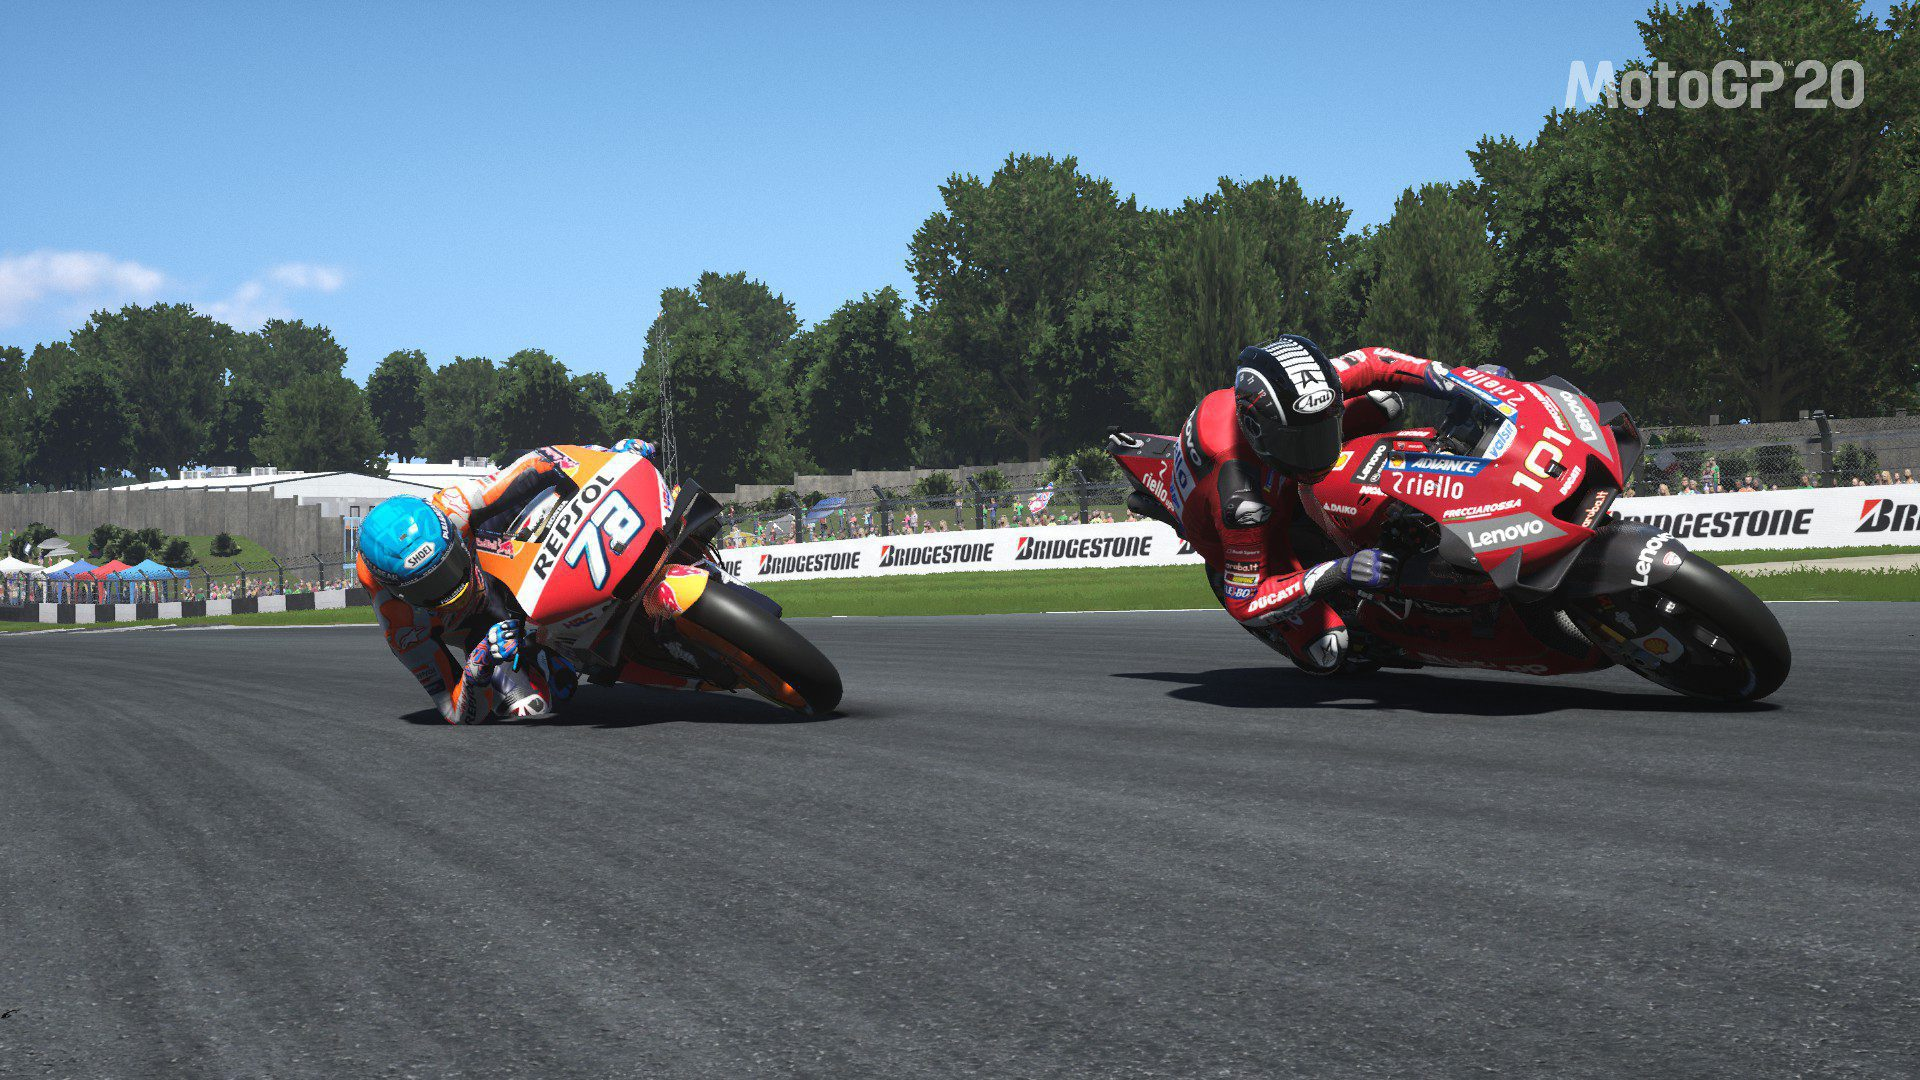 Moto GP20 review